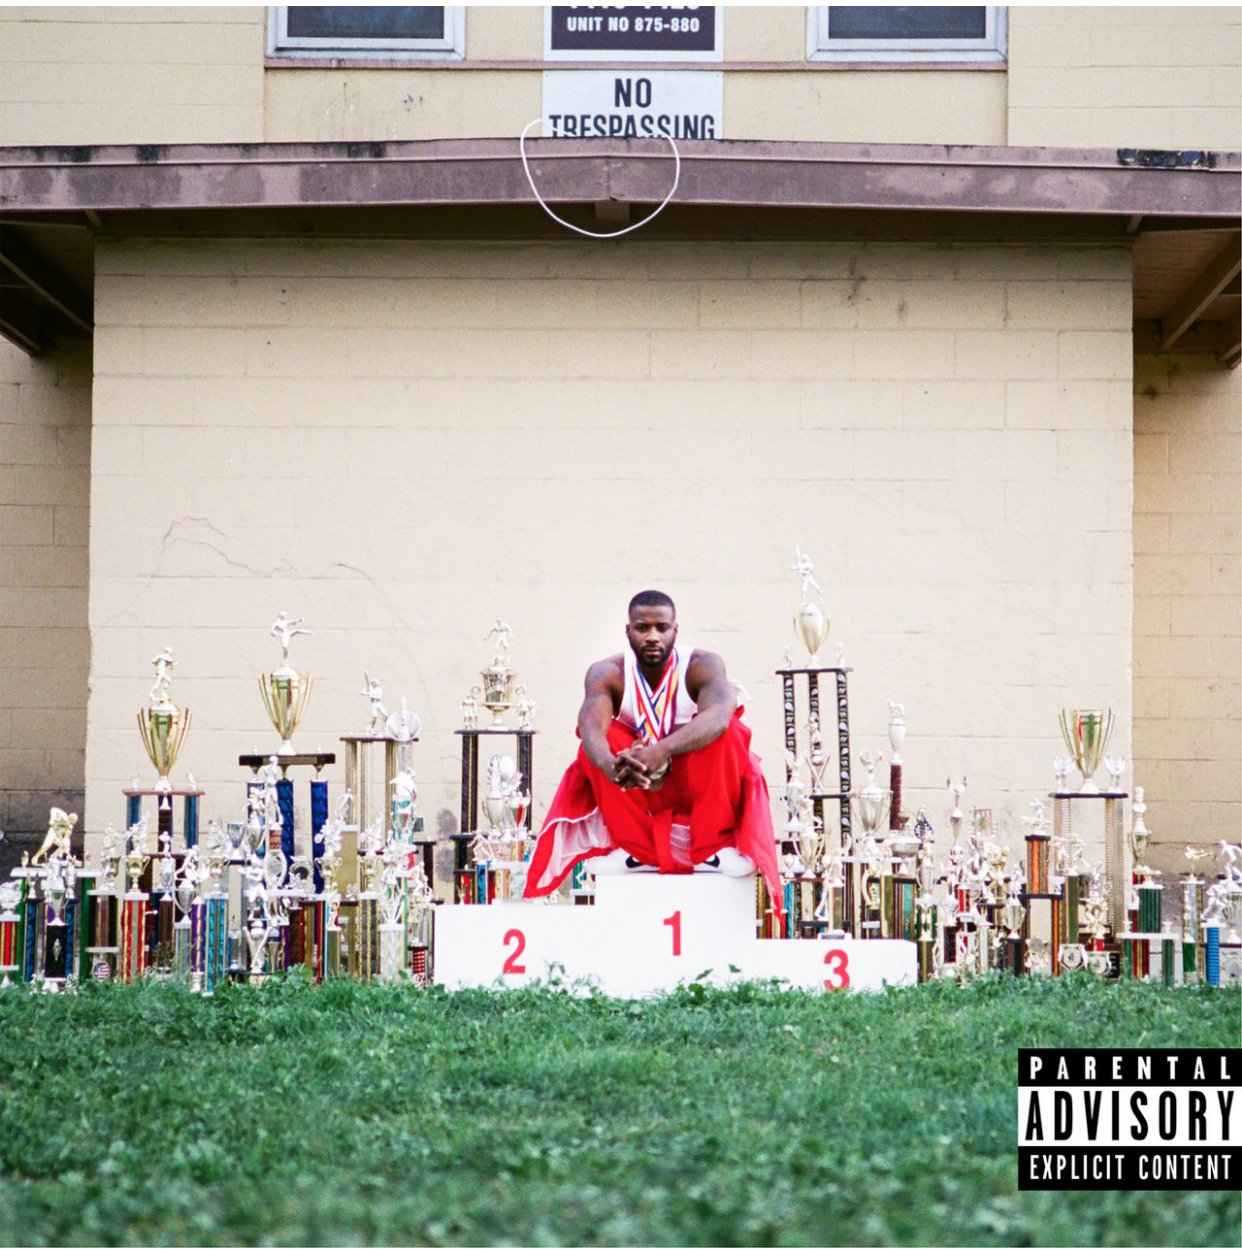 Jay Rock 'WIN' https://t.co/Xqdtabwt9L #TIDAL #TDE https://t.co/HcgfbvuINV